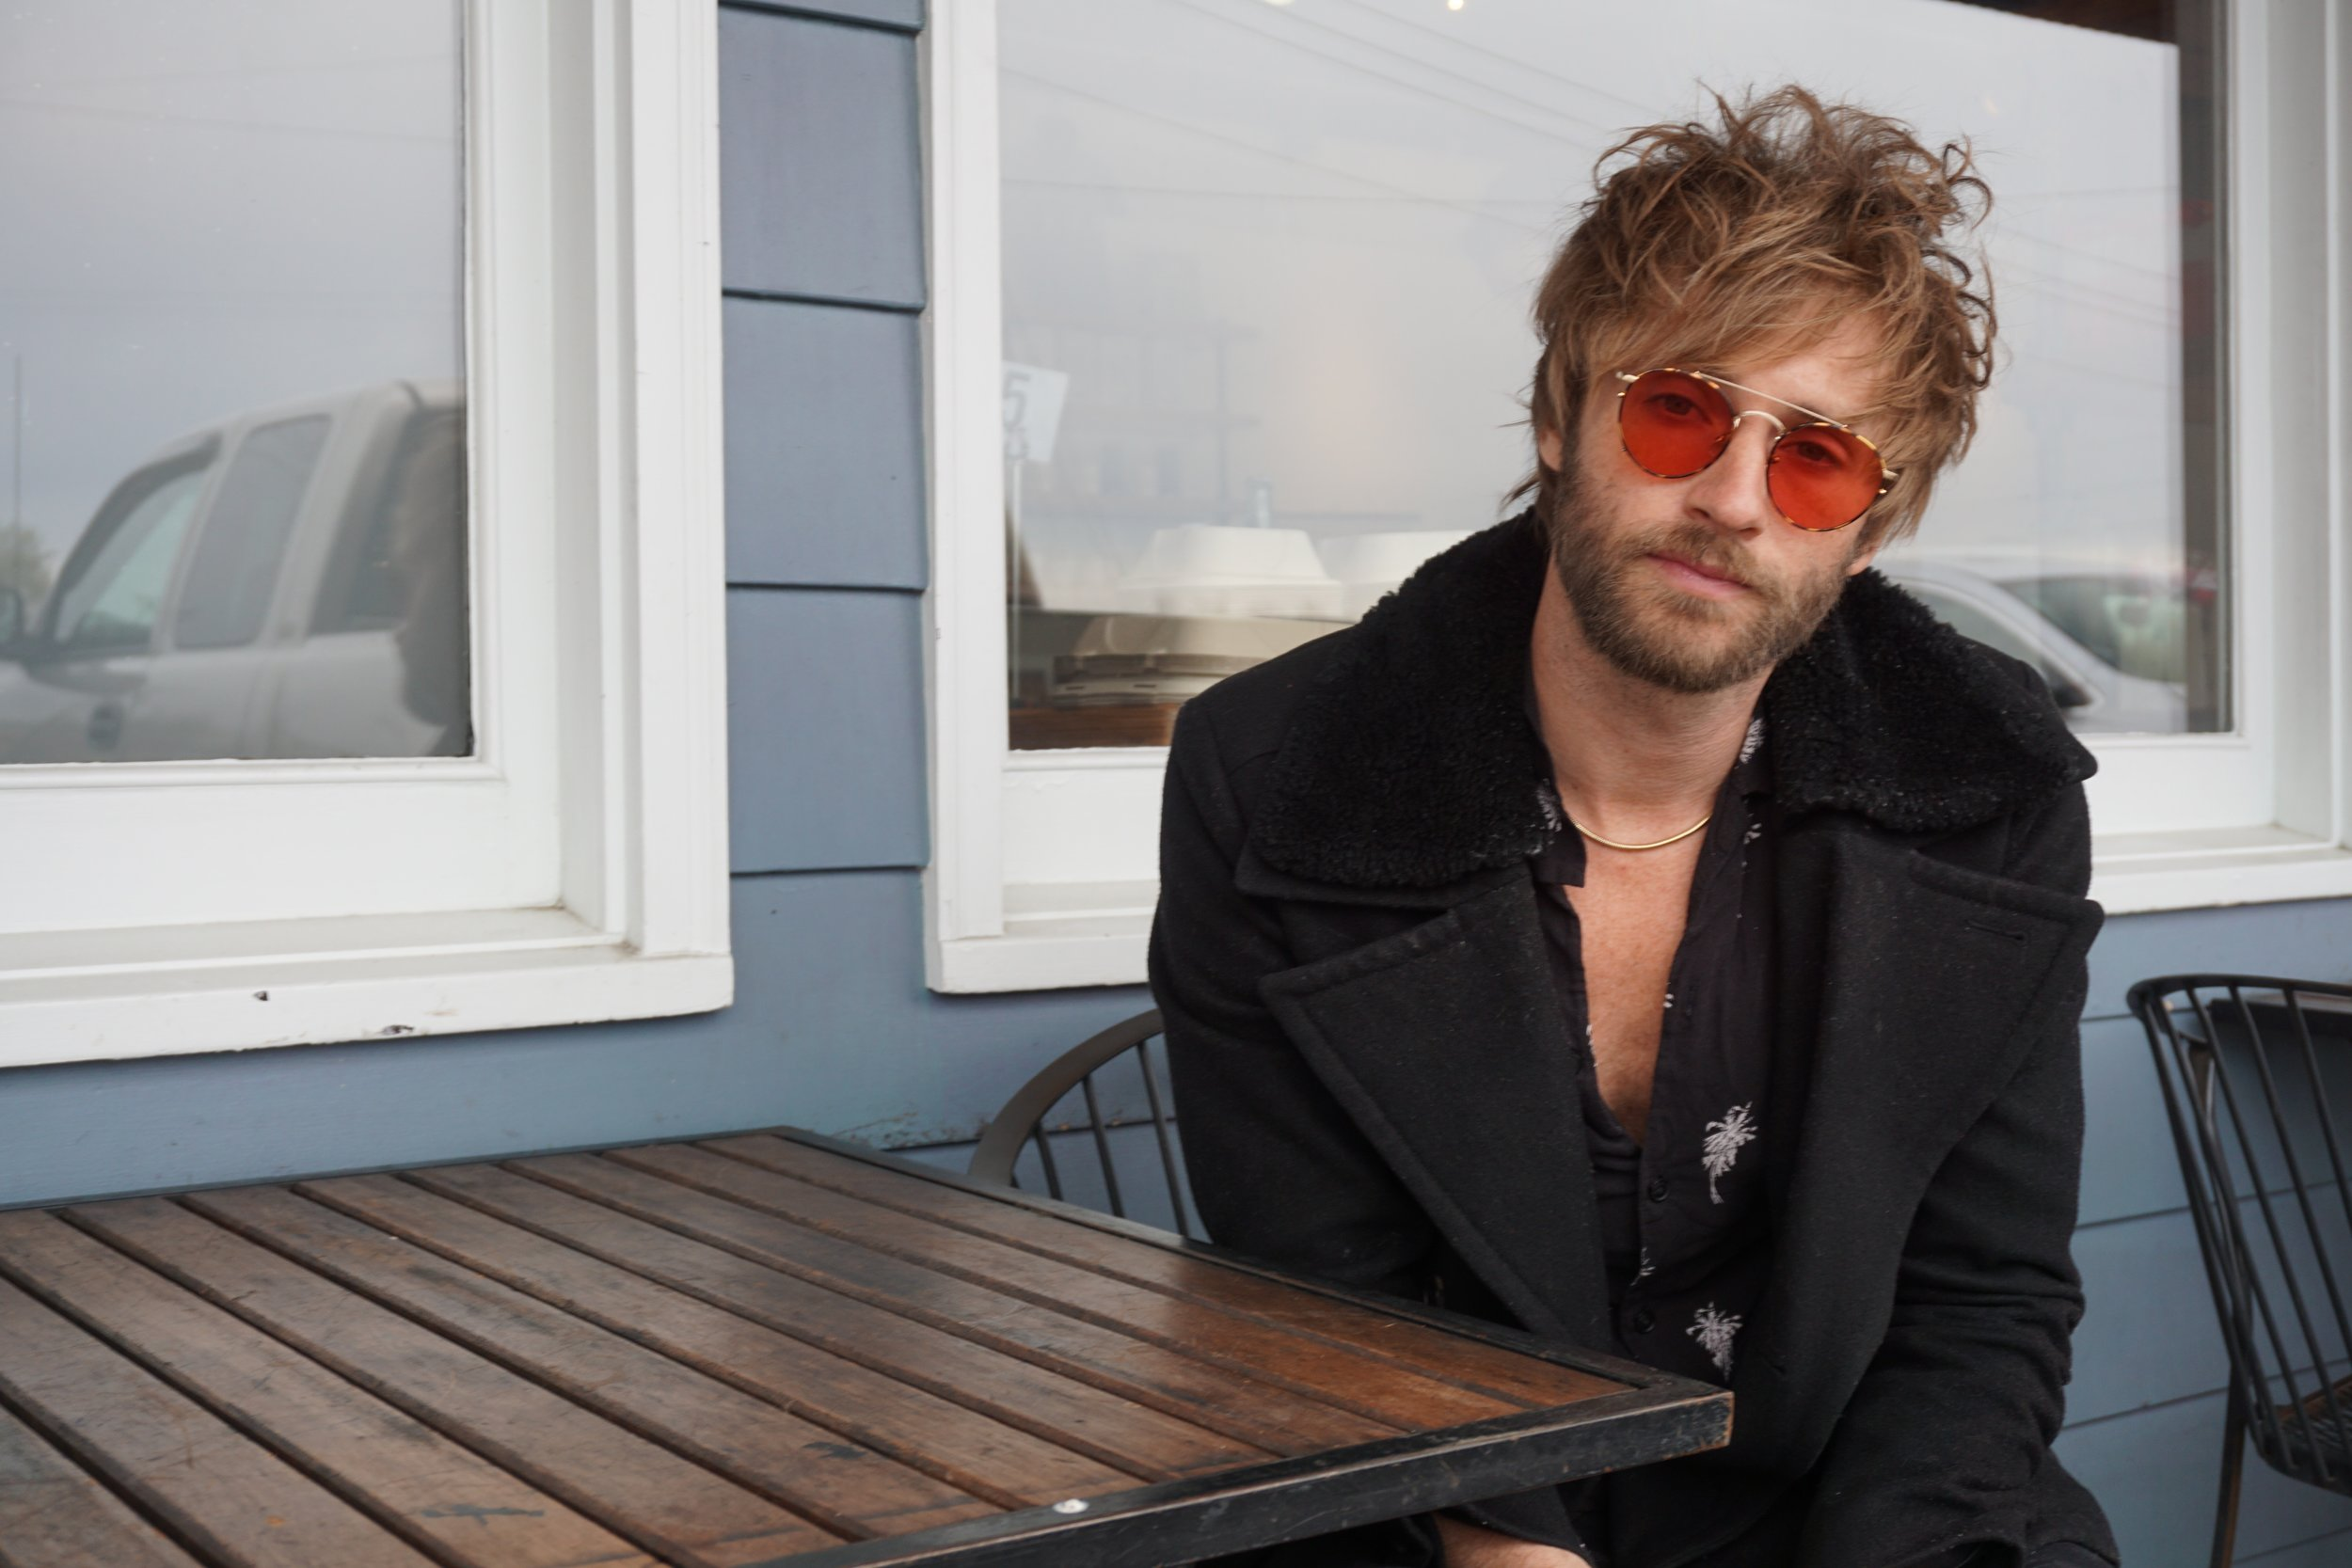 """Paul McDonald  - [On re-entering the Nashville songwriting scene]  I hit up a lot of my old buddies, so I wrote with some of the biggest country songwriters, pop writers, all the way to my next door neighbor who didn't even have a PRO set up, like """"BMI? ASCAP? What is that?"""" and I was just like """"Dude, who cares, let's write a song."""" That was all mostly just to get this stuff out. Figuring it out and finding the right people you want to work with is important - in songwriting and in life - so I experimented and tried writing with a whole lot of folks. I found a lot of amazing people. It's like dating. You find you date a handful of people, and a lot of them didn't work out, [but] you always learn something from it, and I feel like I've done so many where I've gotten myself to find people I really enjoy writing with."""